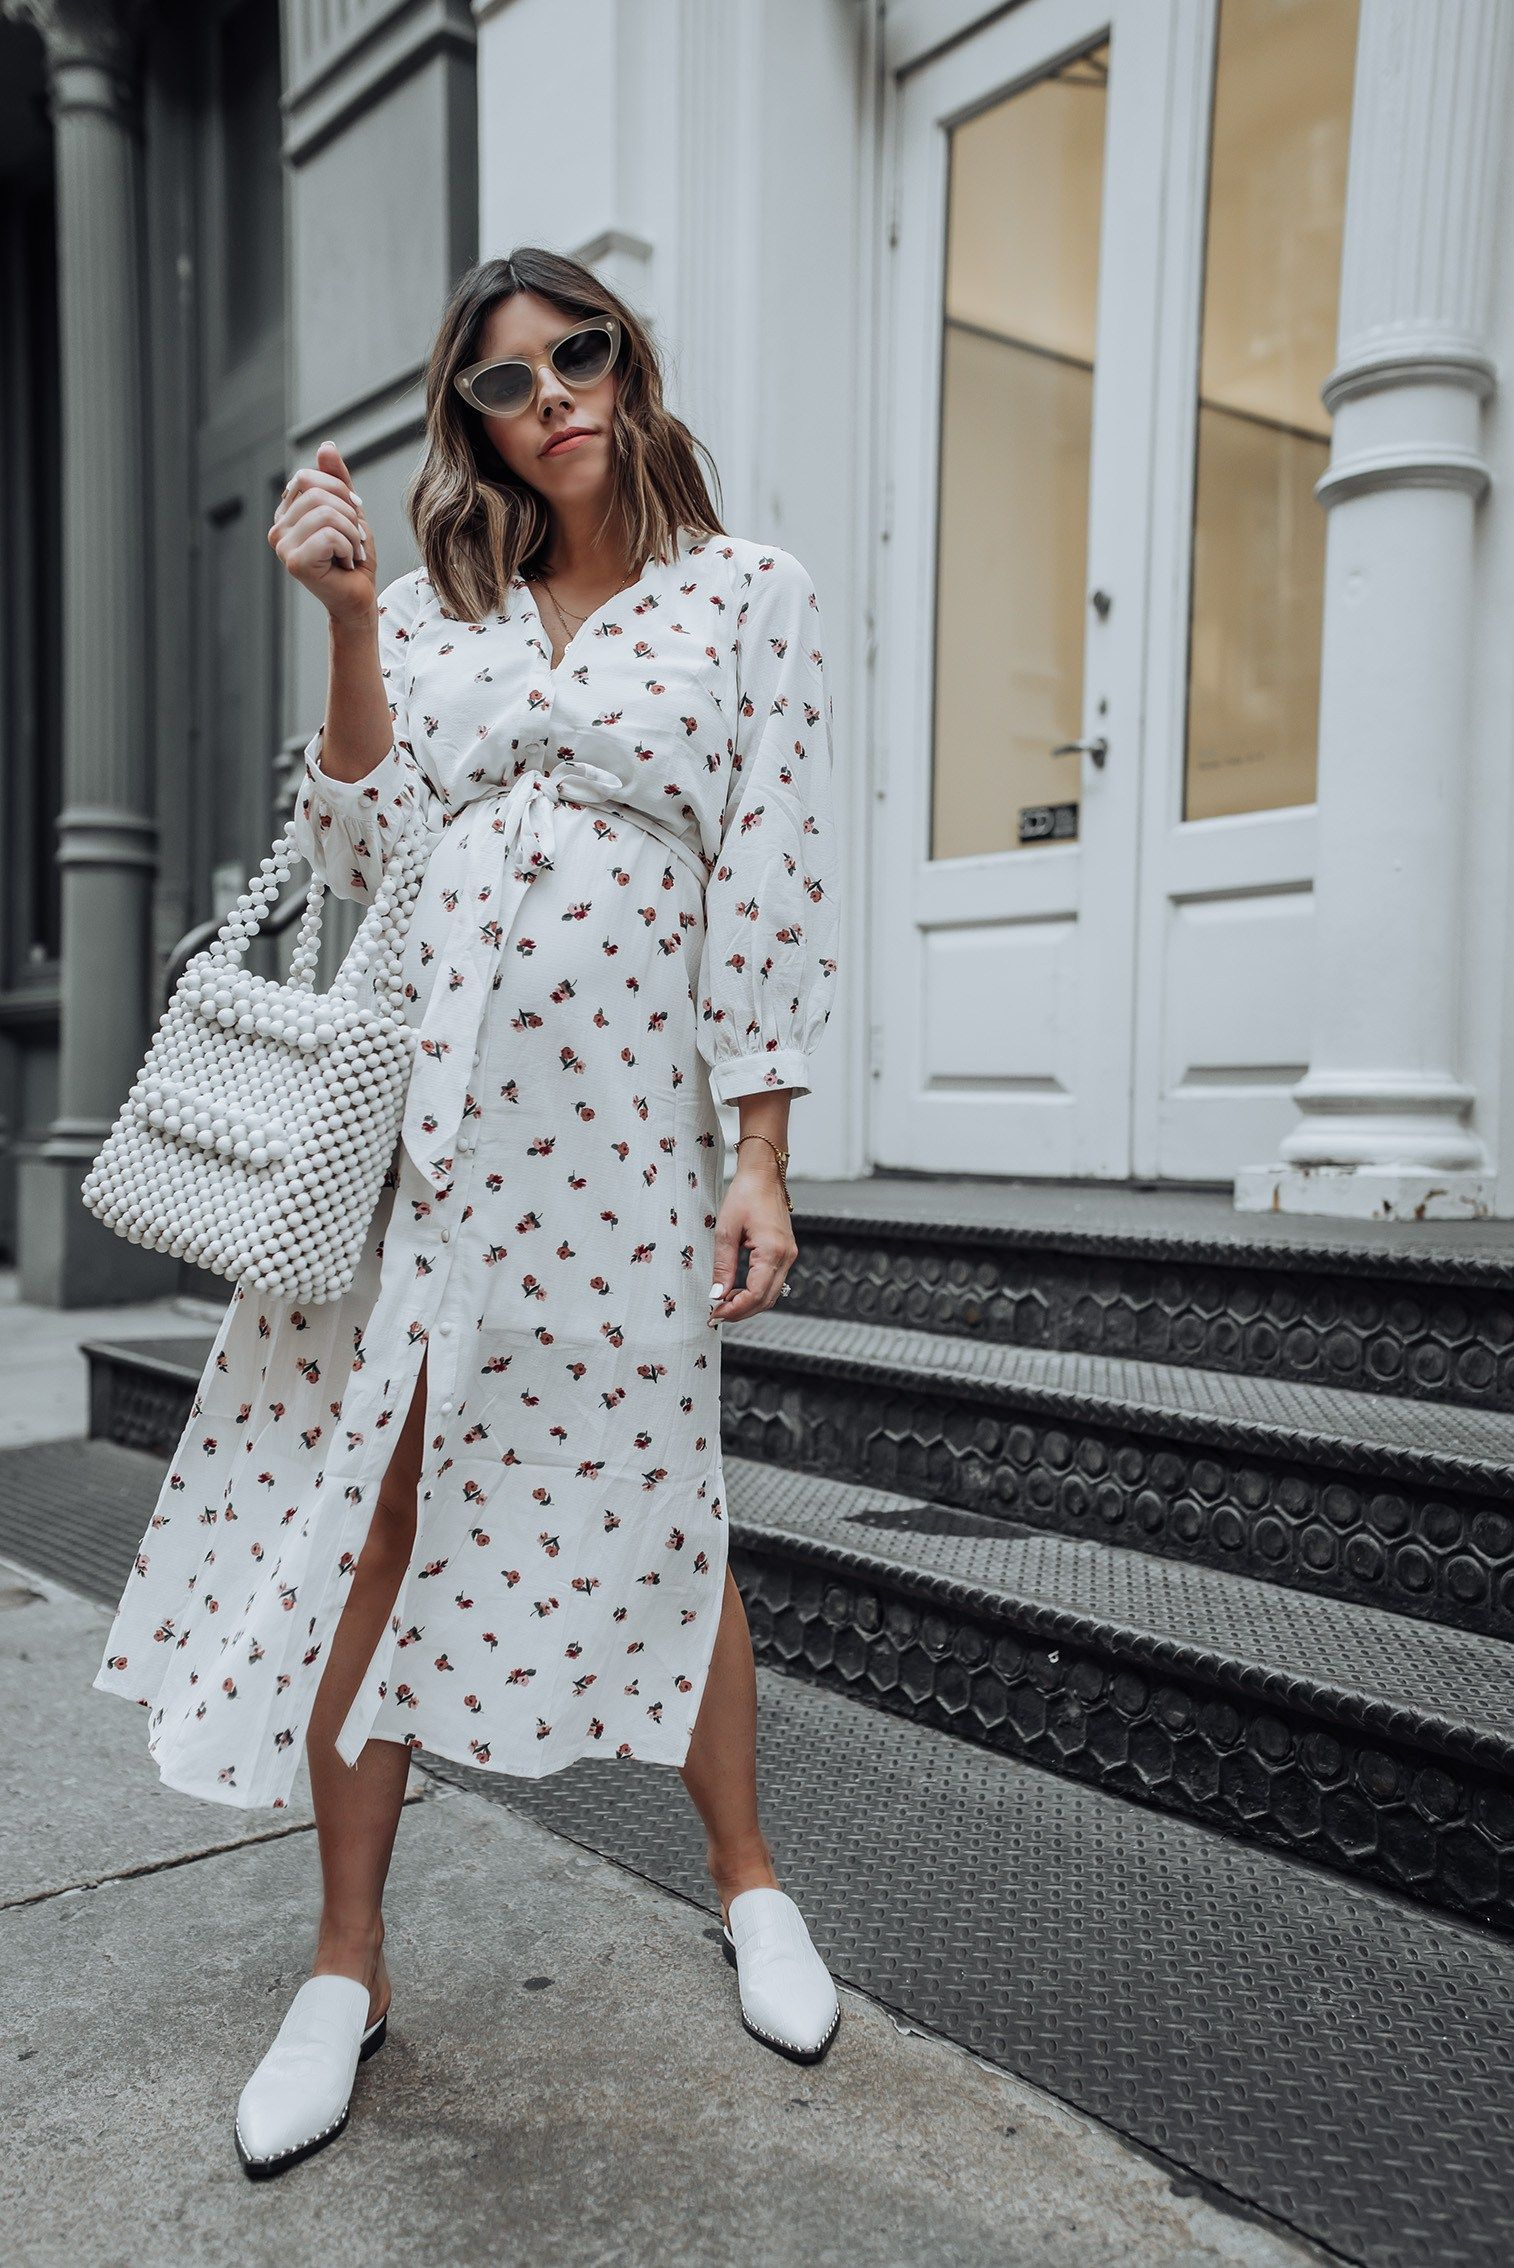 All White Flaunt And Center Stylish Maternity Outfits Stylish Clothes For Women Dresses For Pregnant Women